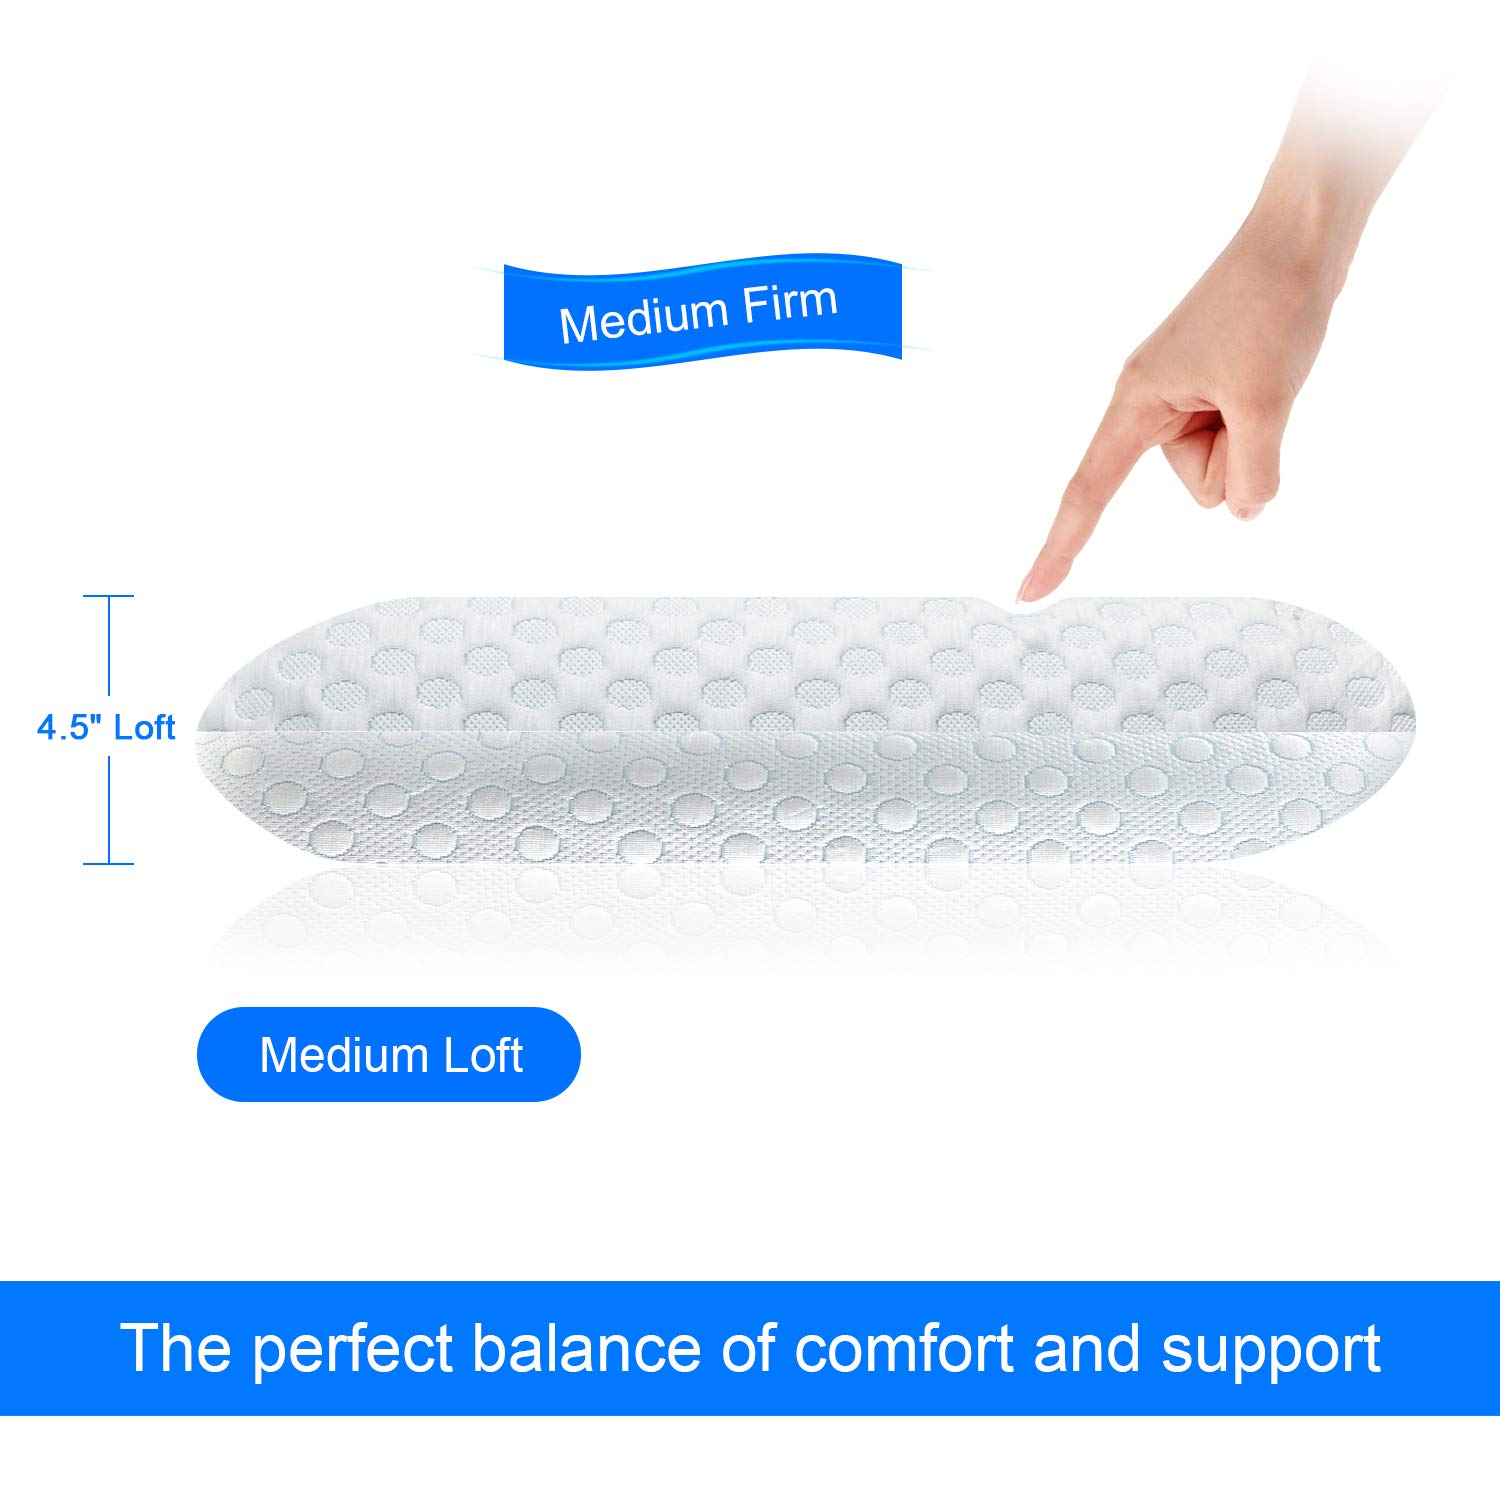 Milemont Memory Foam Pillow, Bed Pillow for Sleeping, Pillow for Neck Pain, Neck Support for Back, Stomach, Side Sleepers, CertiPUR-US, Standard Size by Milemont (Image #3)